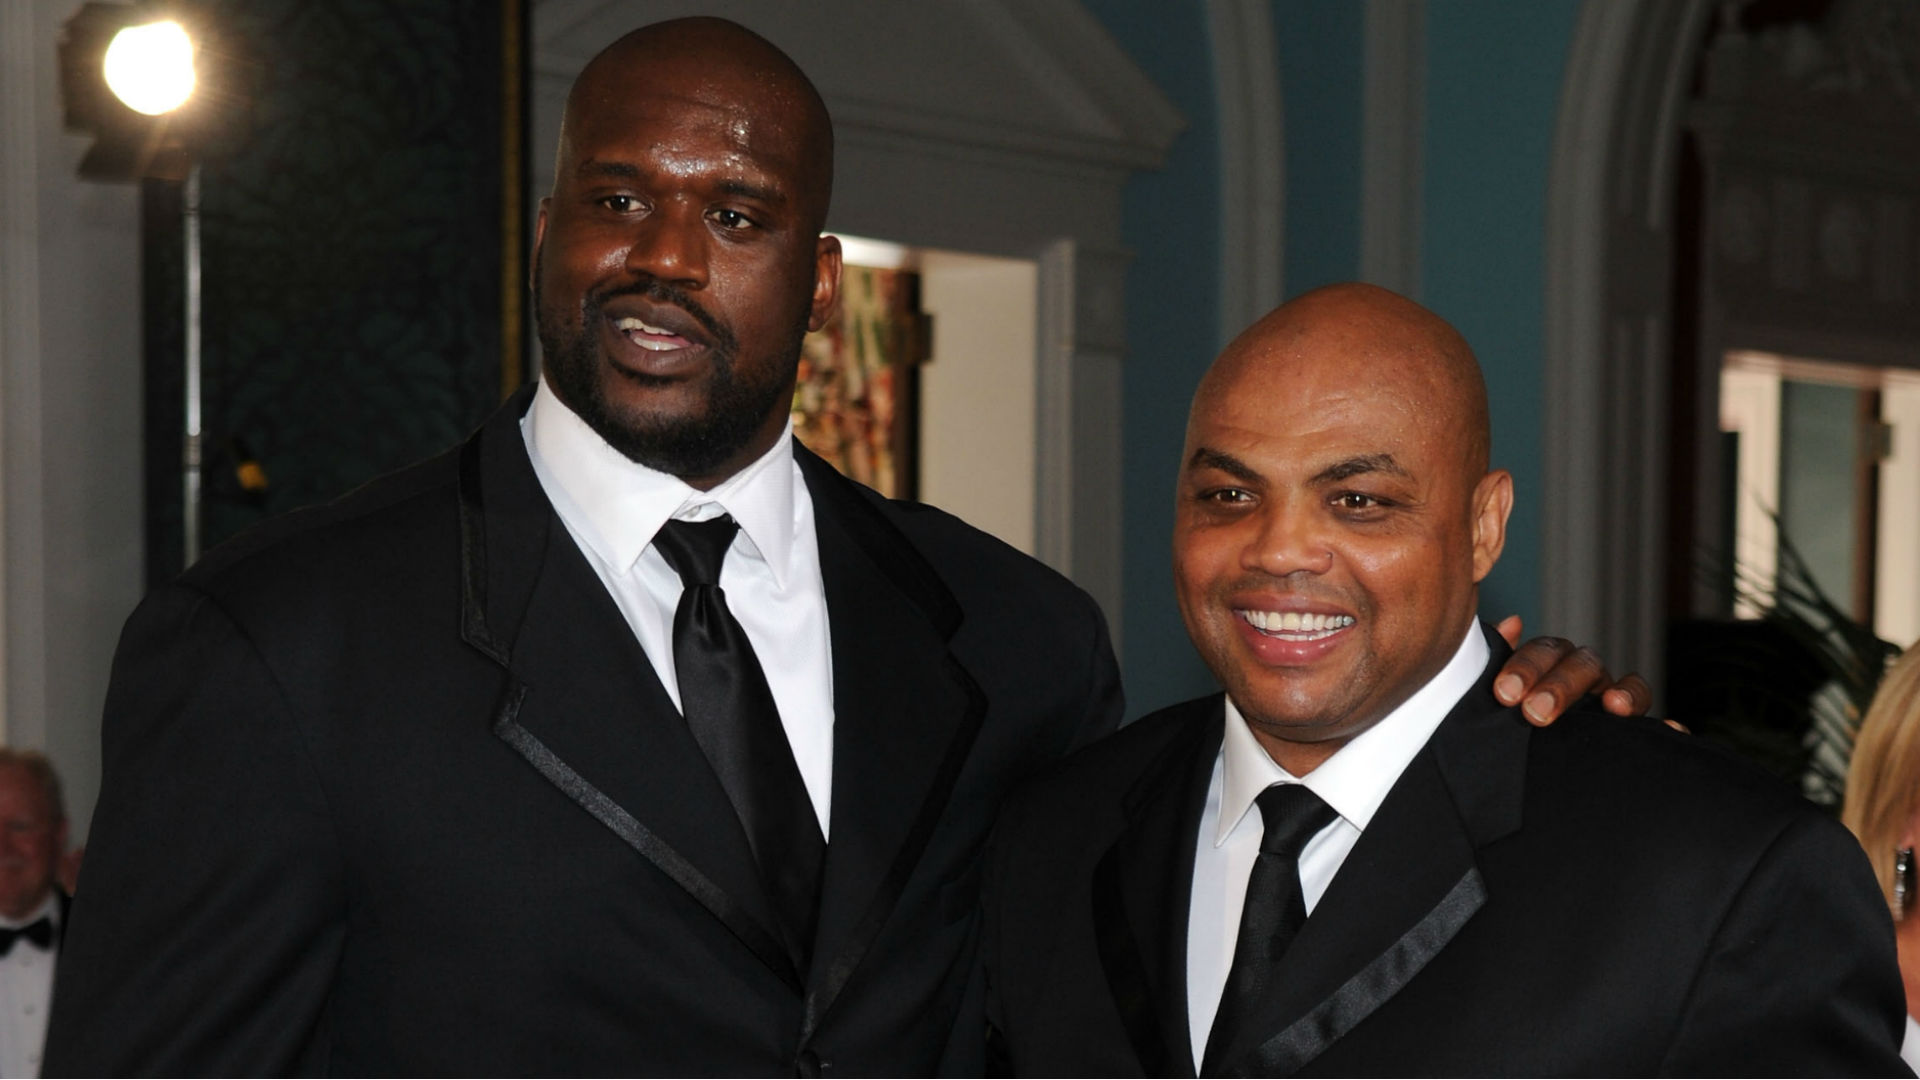 Shaquille O'Neal drops 'Google me, Chuck' on Barkley during heated talk